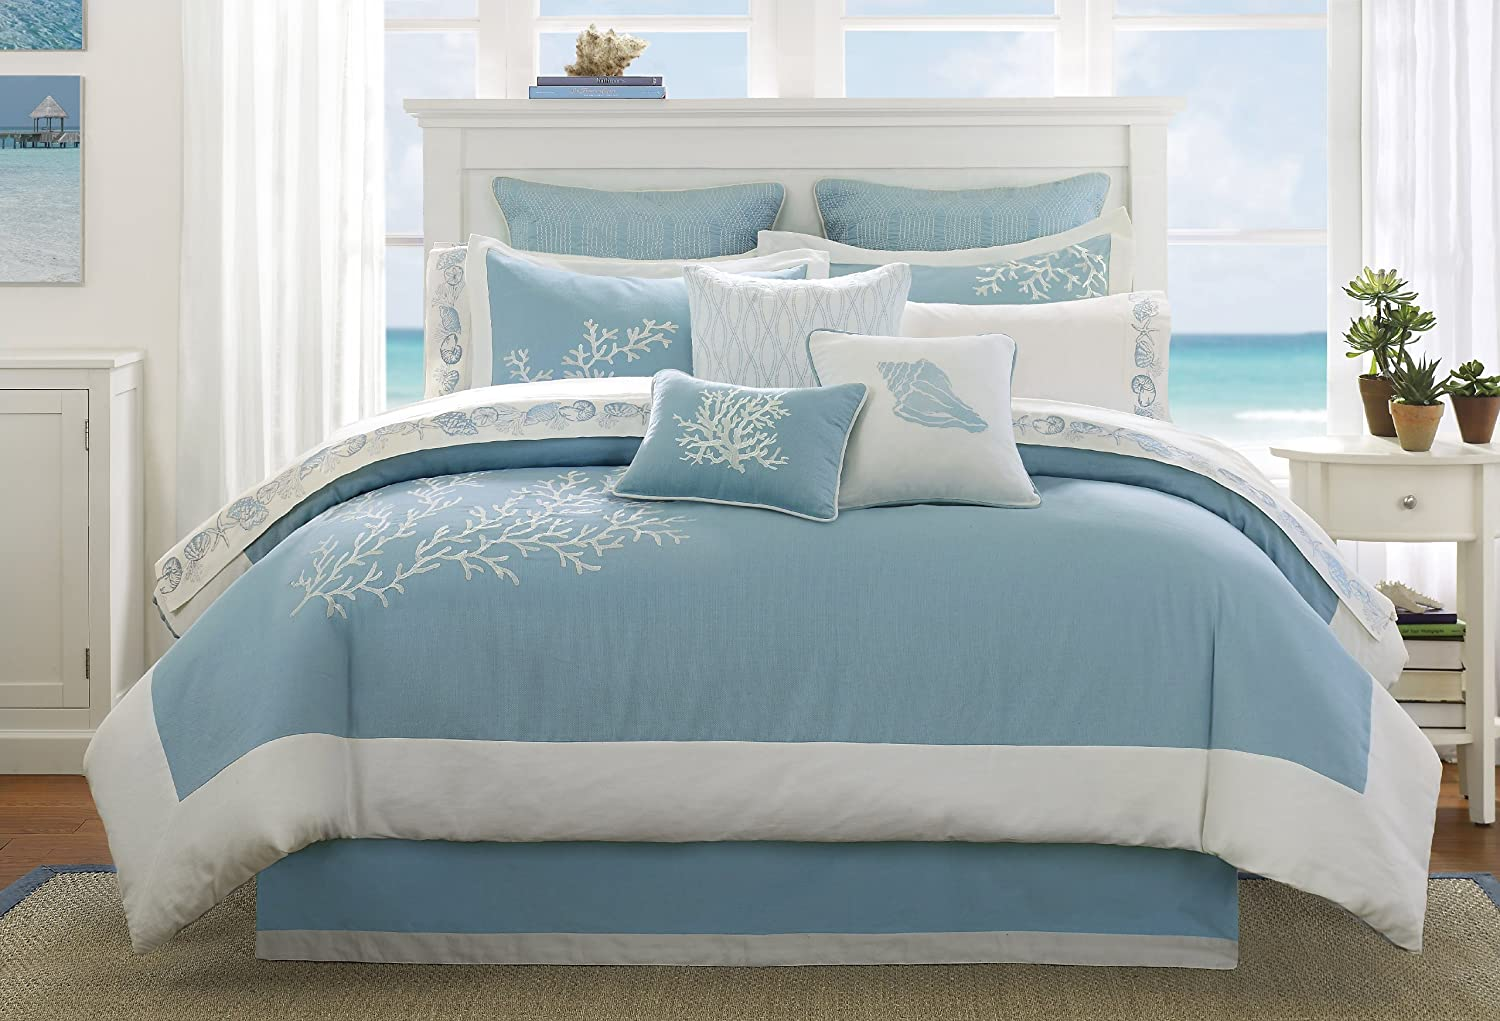 Amazon.com: Harbor House Coastline Queen Size Bed Comforter Set ...